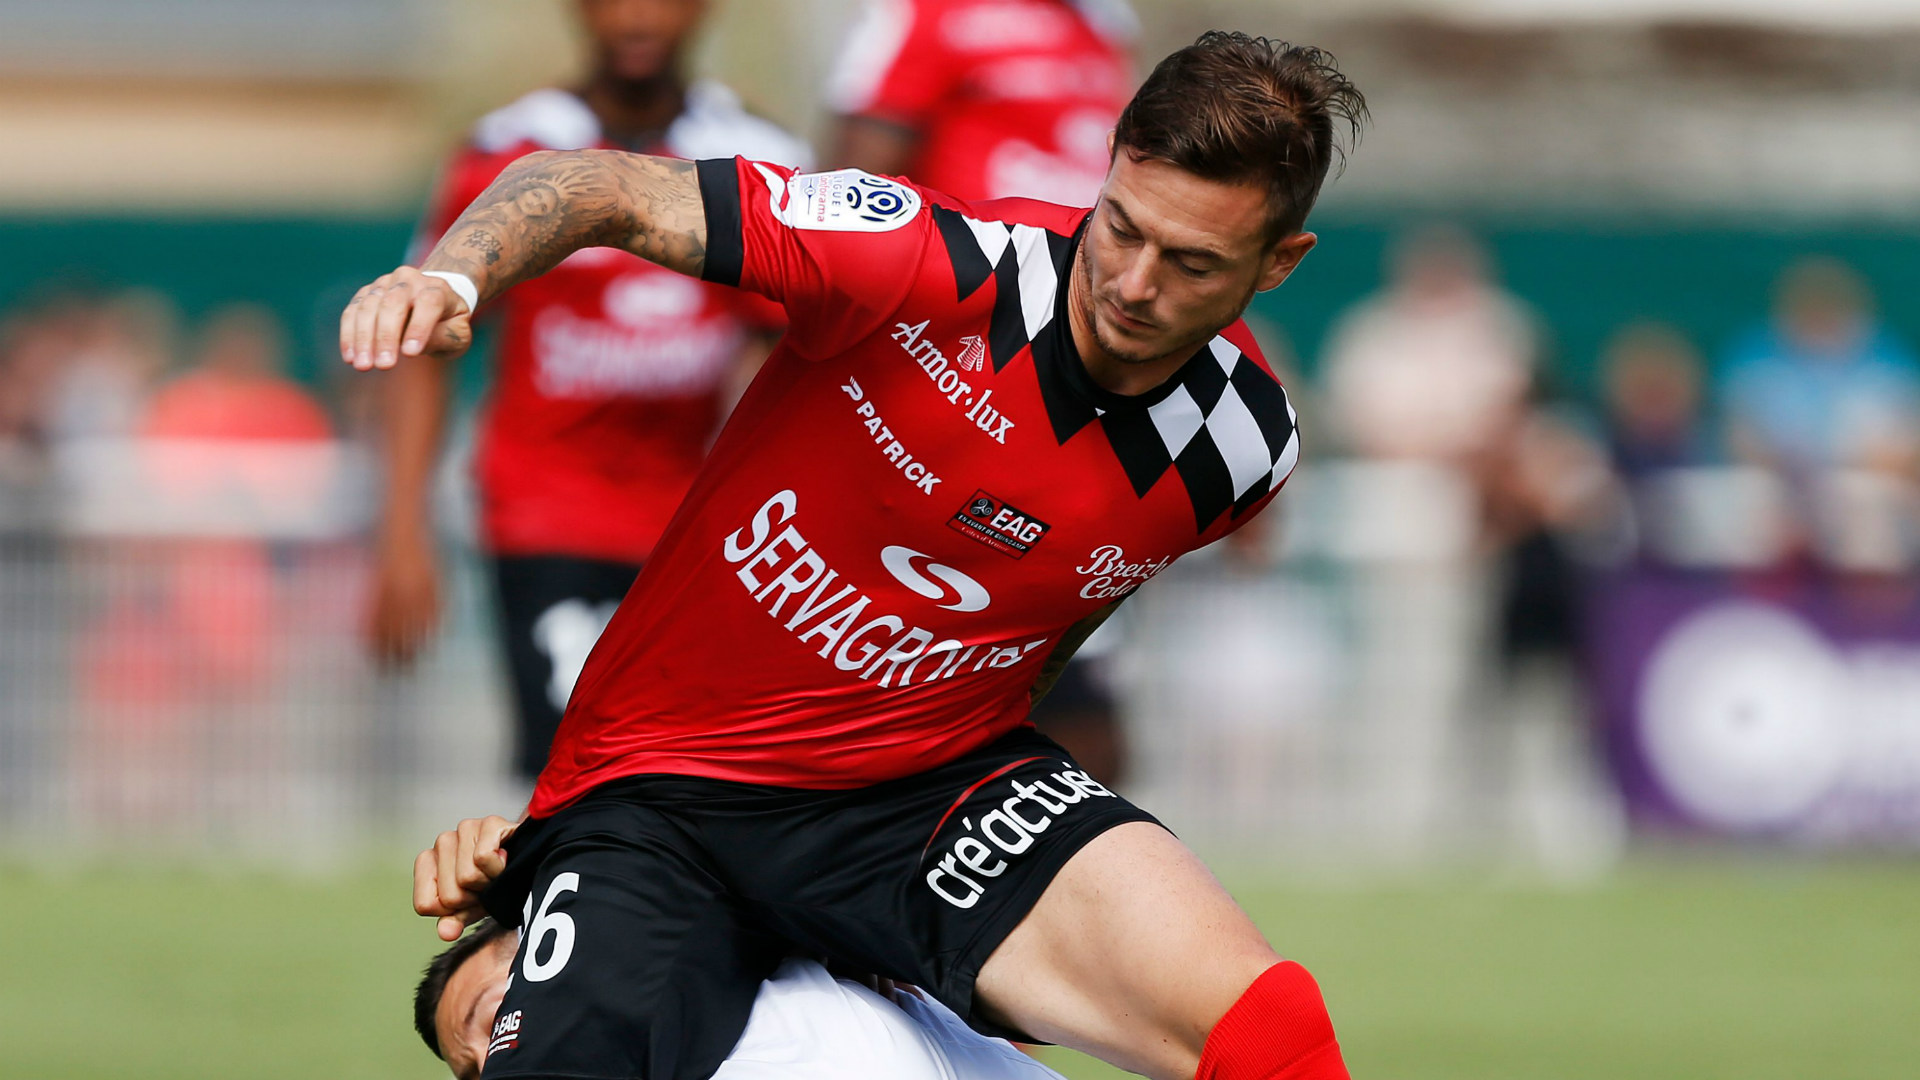 Ligue 2 : Guingamp battu à domicile par Valenciennes